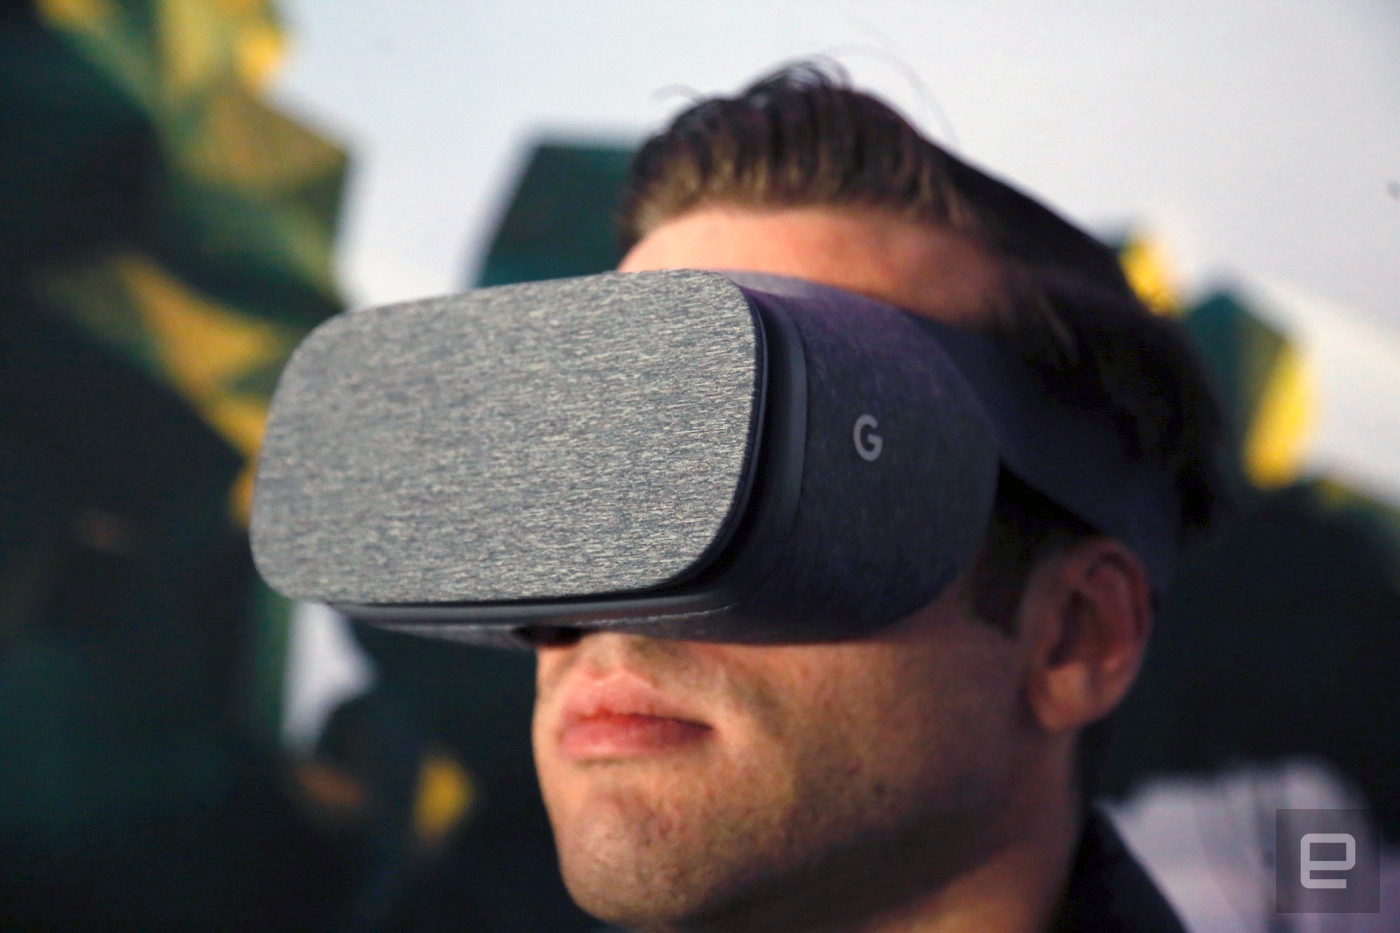 Google's VR future includes a headset that tracks your eyes